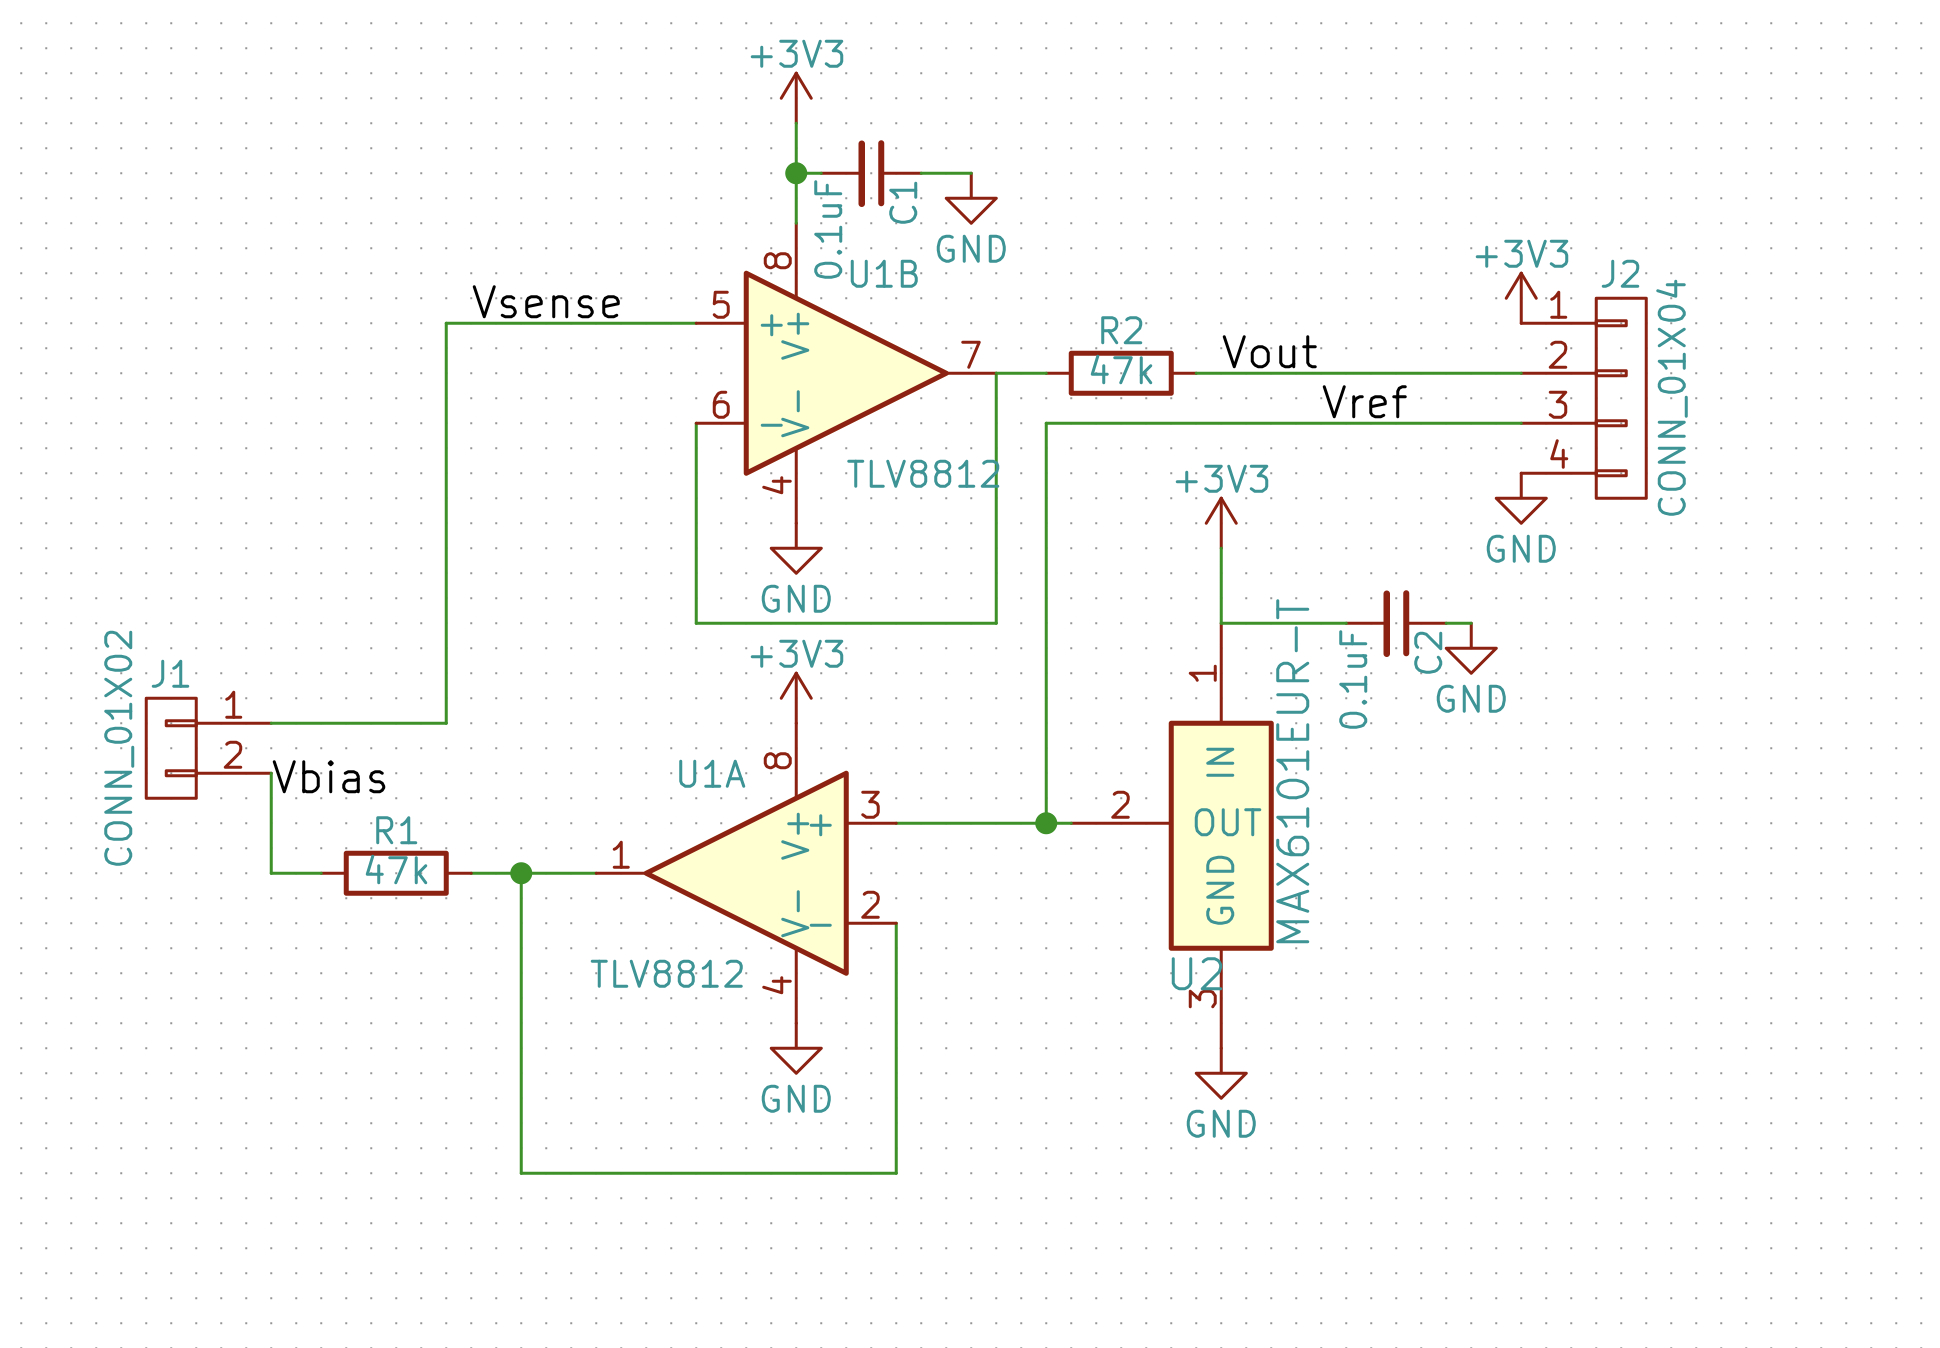 kidde sm120x wiring diagram Collection-Kidde Sm120x Relay Wiring Diagram Elegant Electronics Irc Archive for 2017 08 27 6-c